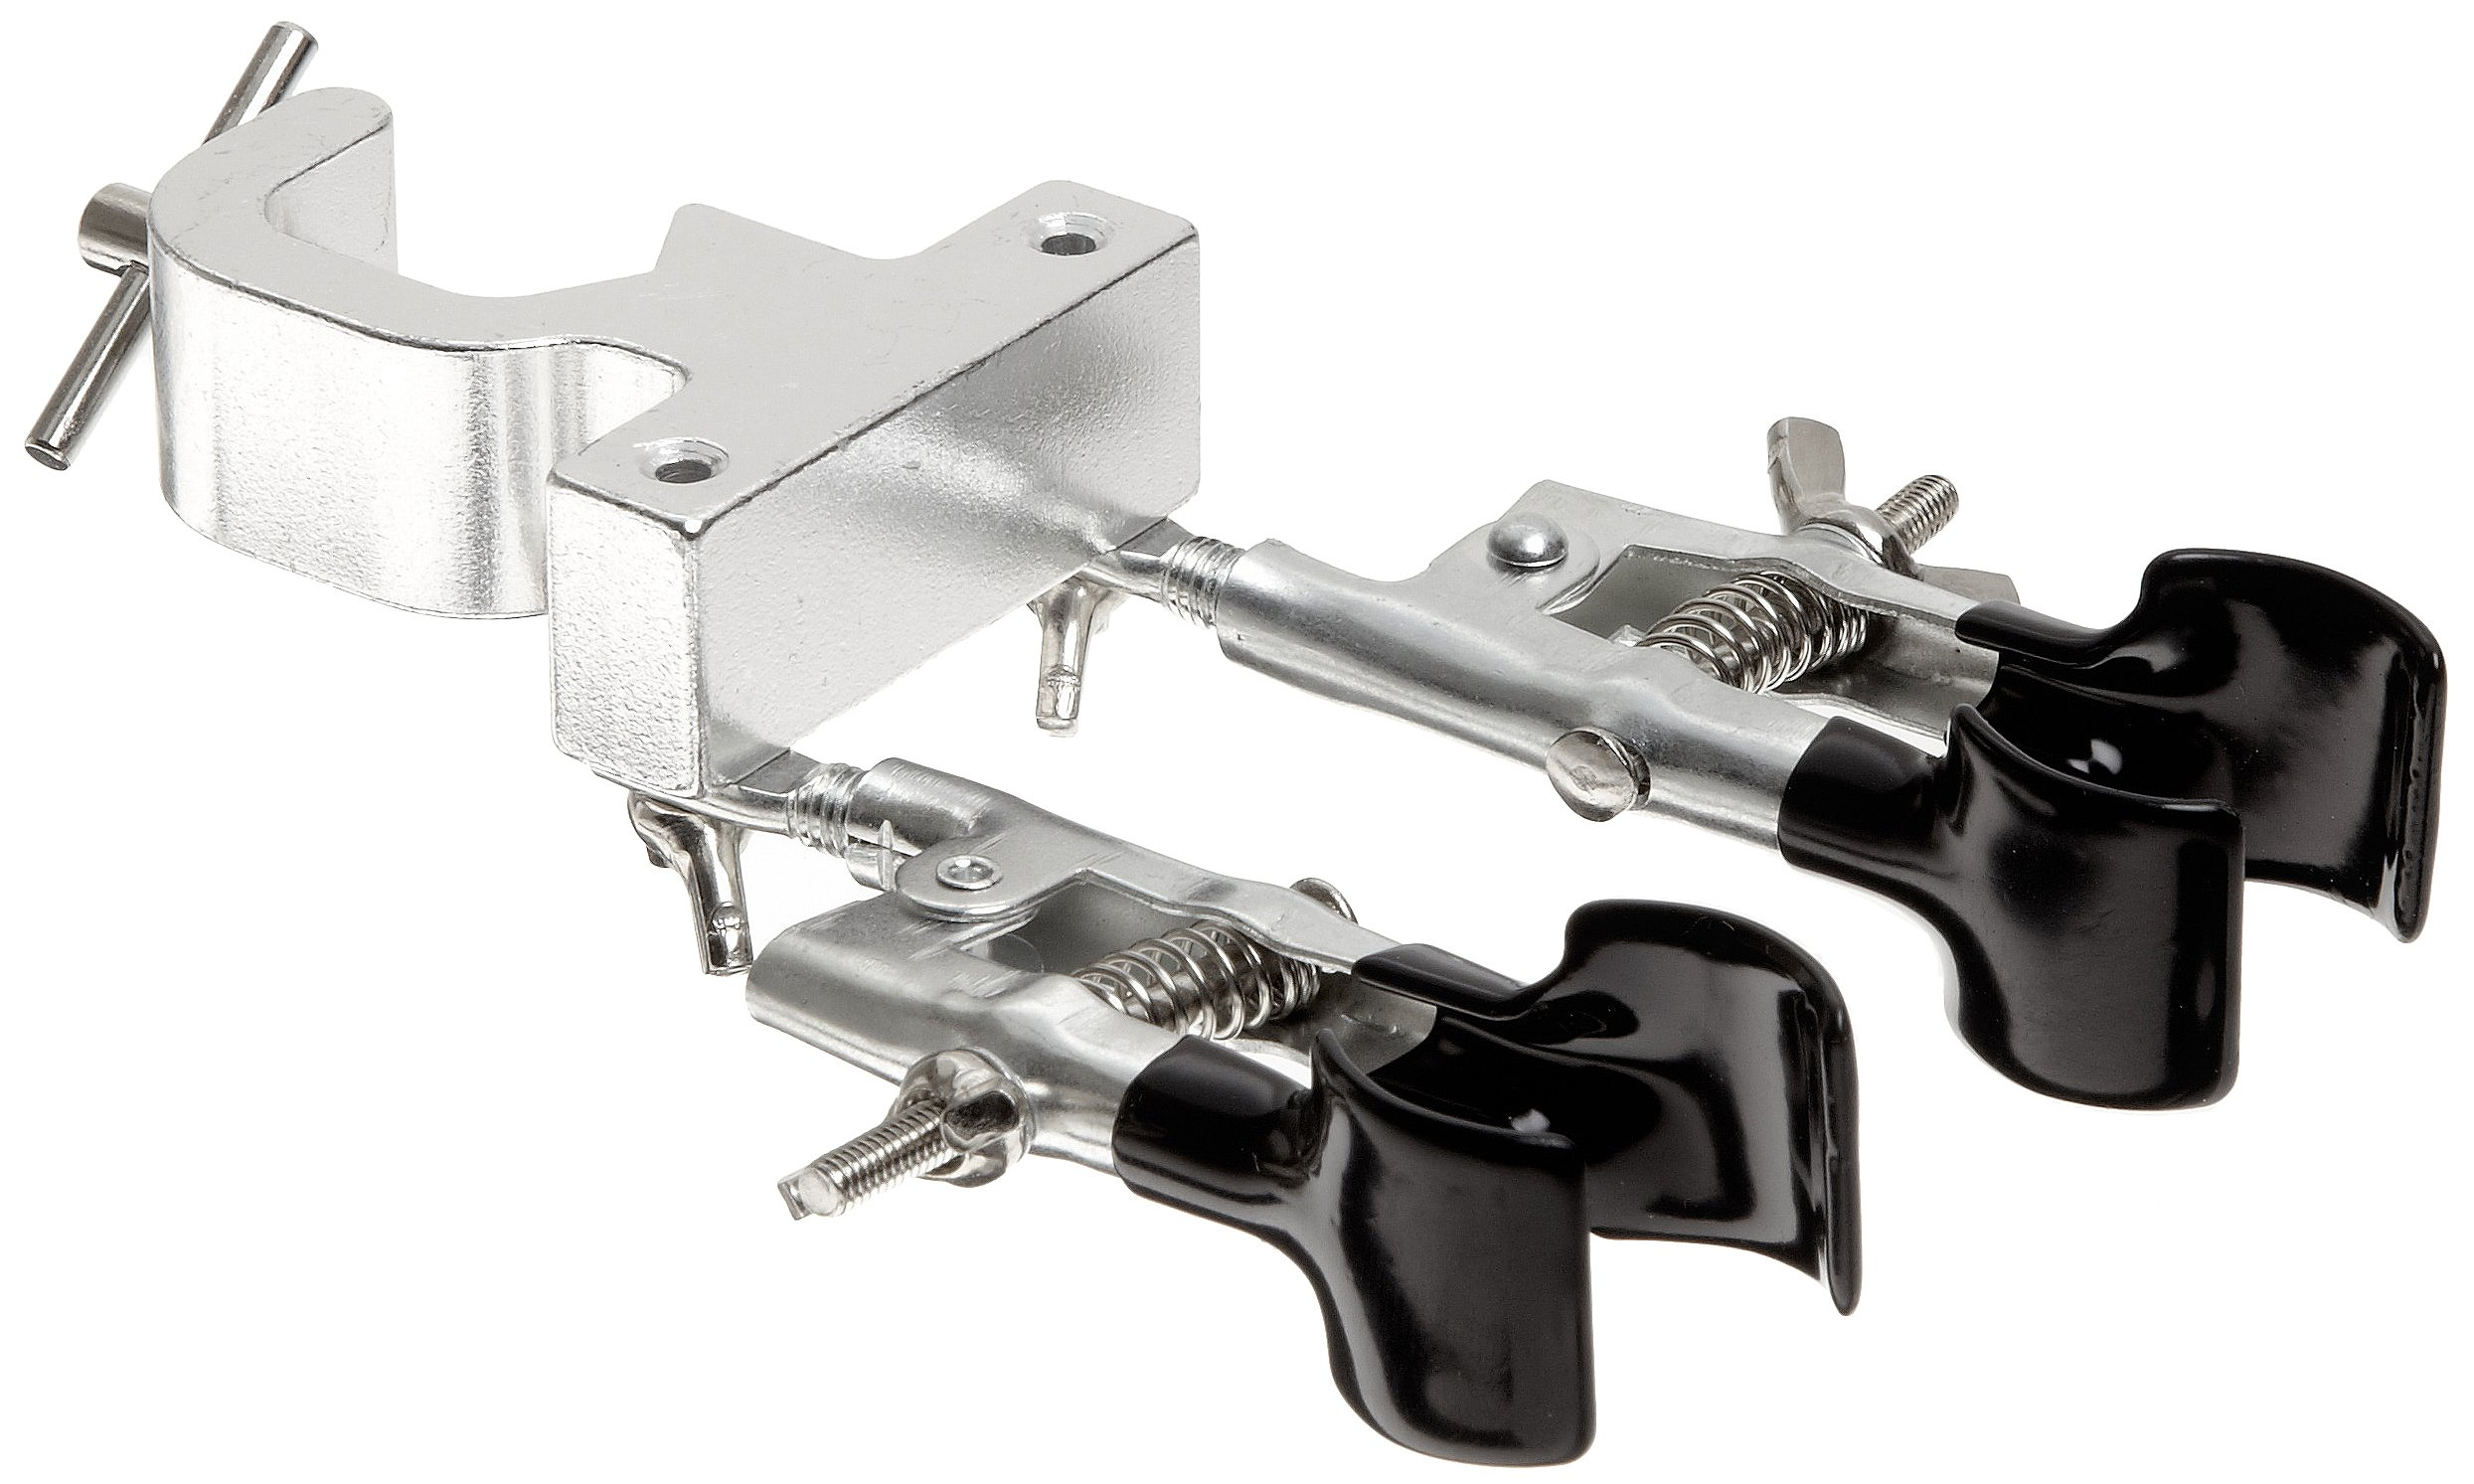 American Educational Double Burette Clamp with Rubber-Coated Rotating Jaws, 3/8'' - 1-3/8'' Holding Size